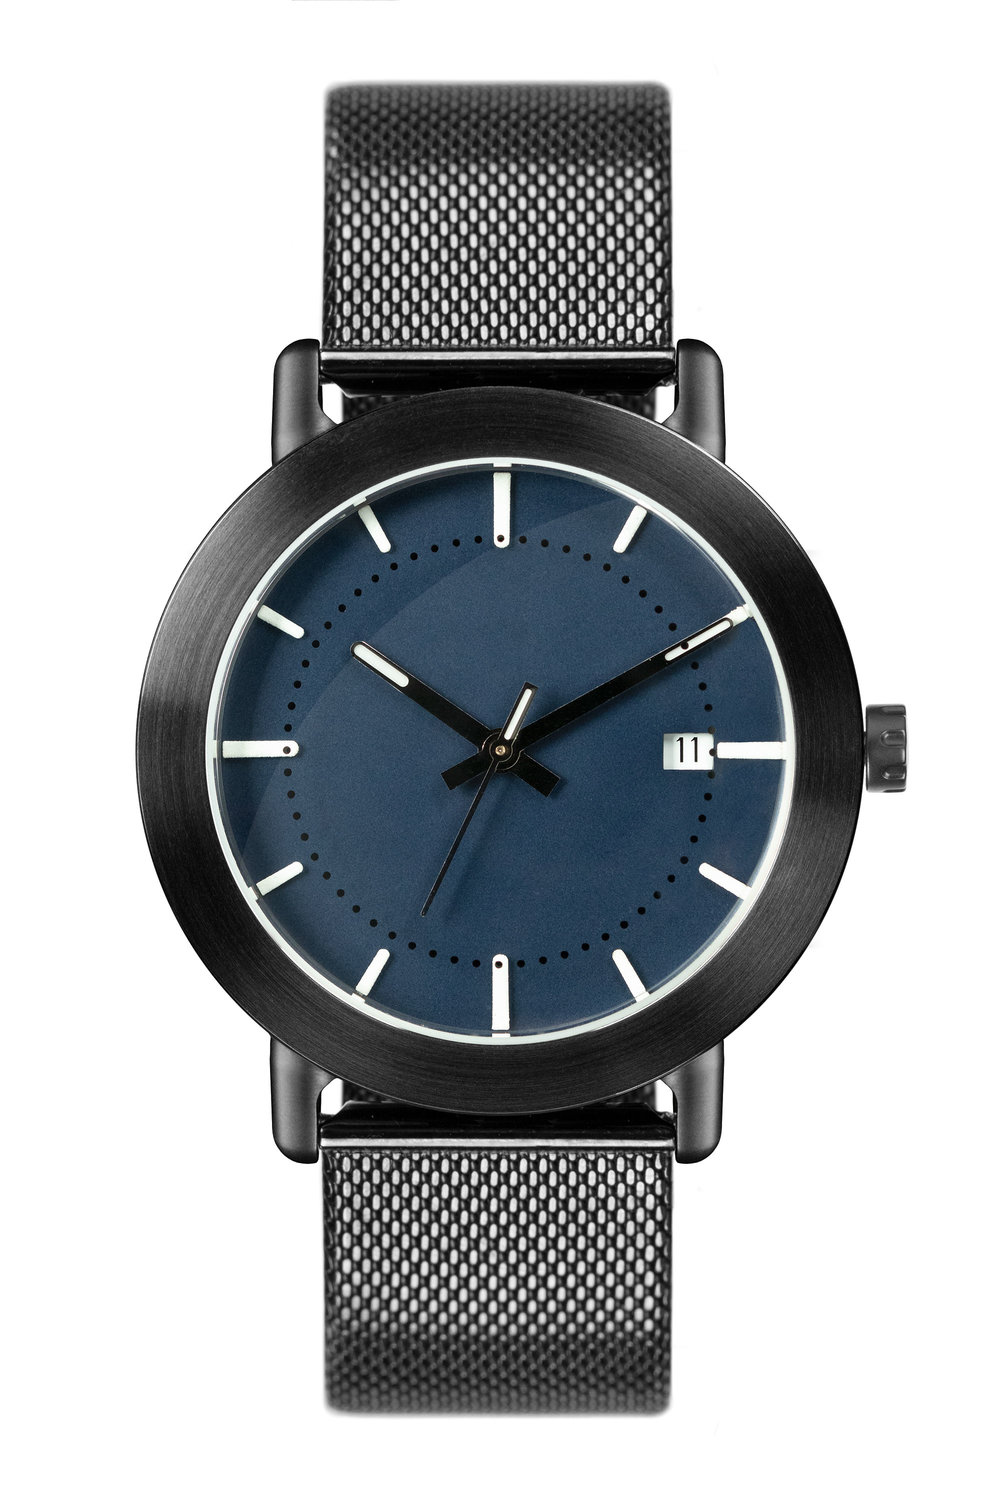 Eleven - Is the result of the challenge to create an elegant dress watch with an automatic movement.From € 725,- for € 525,-